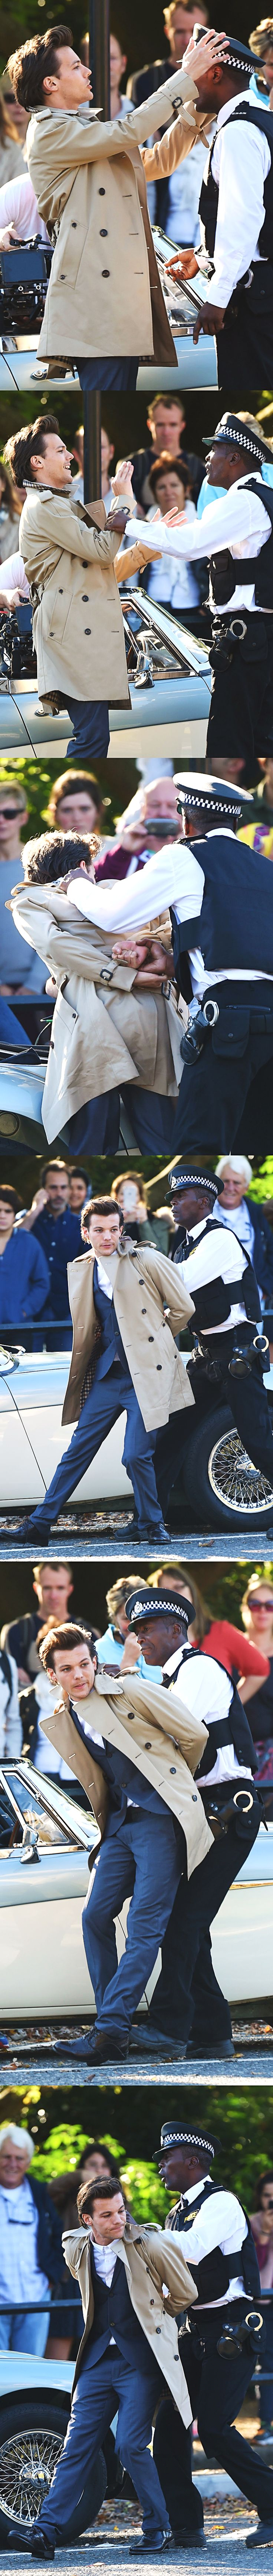 Louis Tomlinson messing with a cop and getting arrested in the Night Changes video